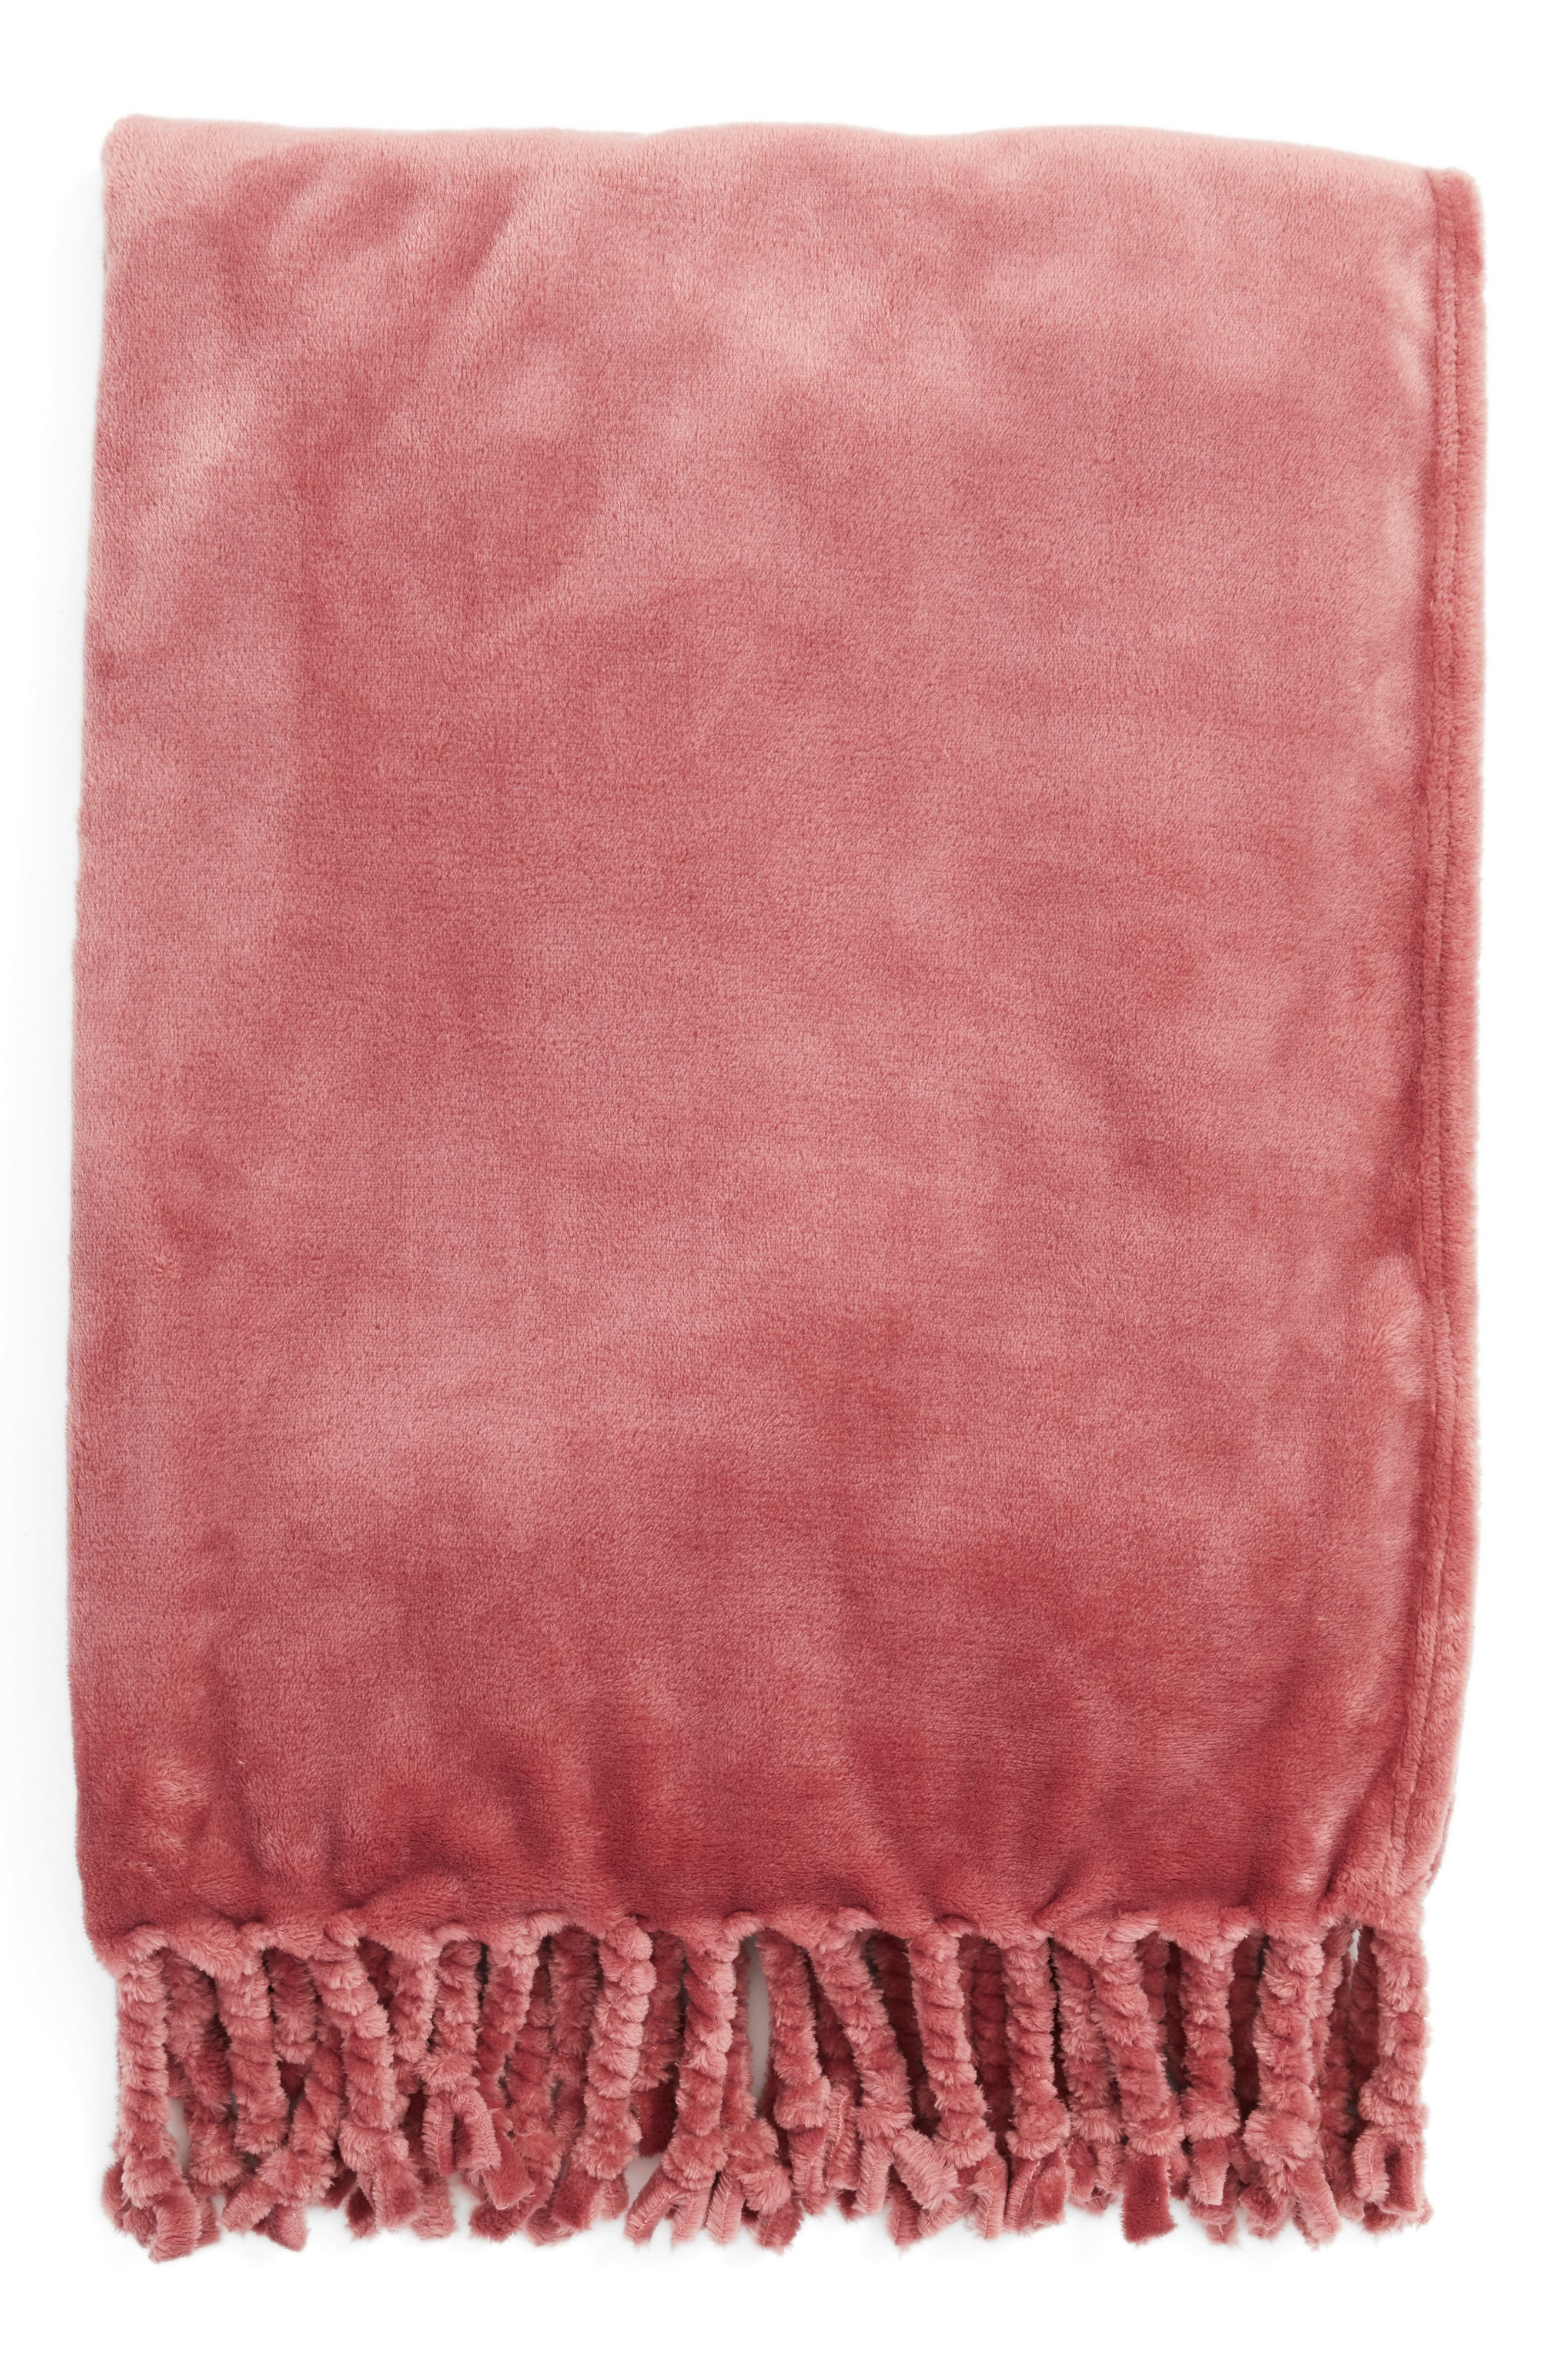 Alternate Image 1 Selected - Kennebunk Home 'Bliss' Plush Throw